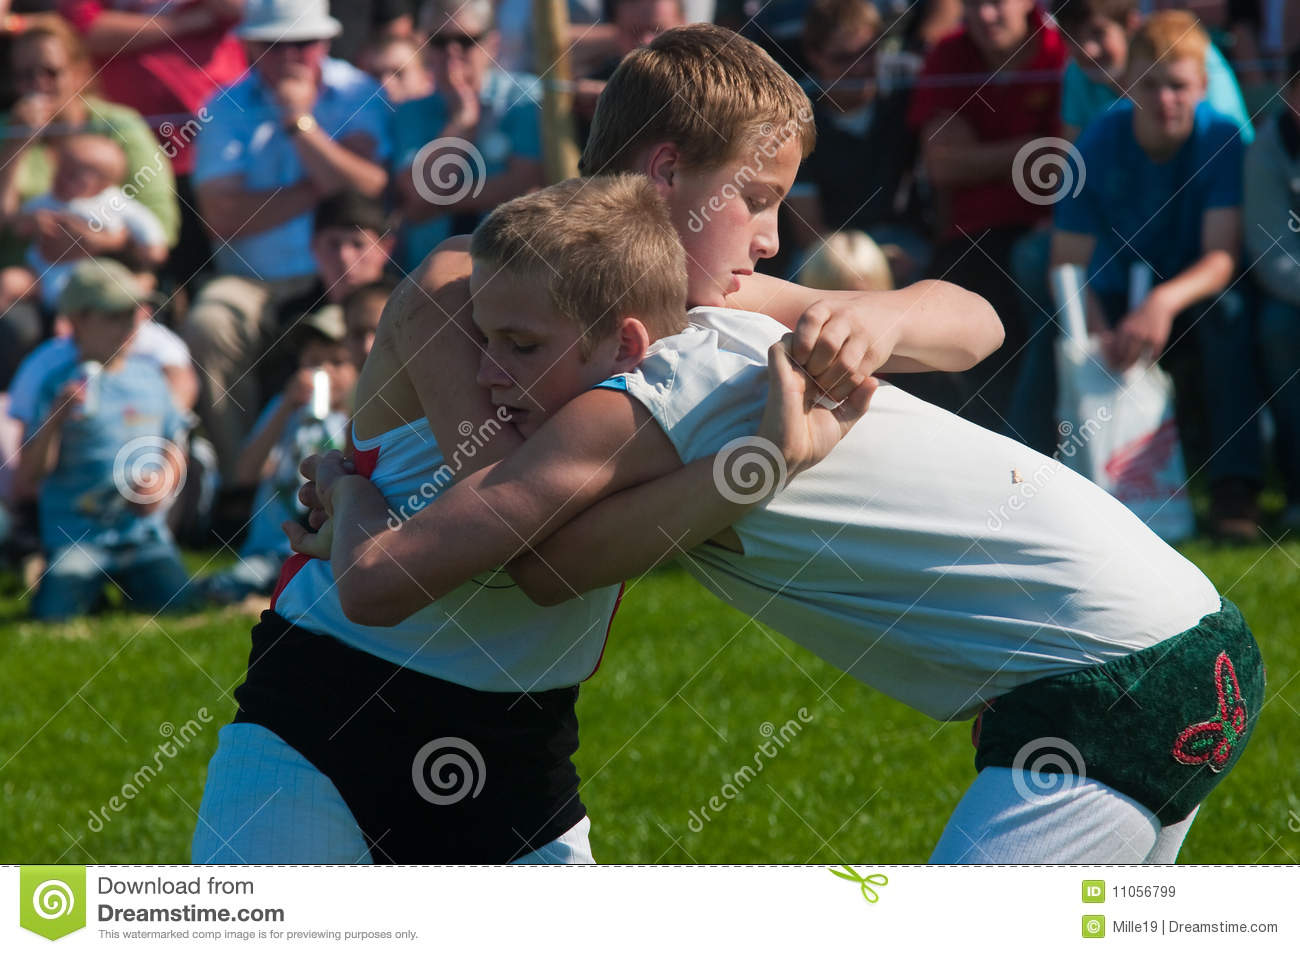 Youths wrestling